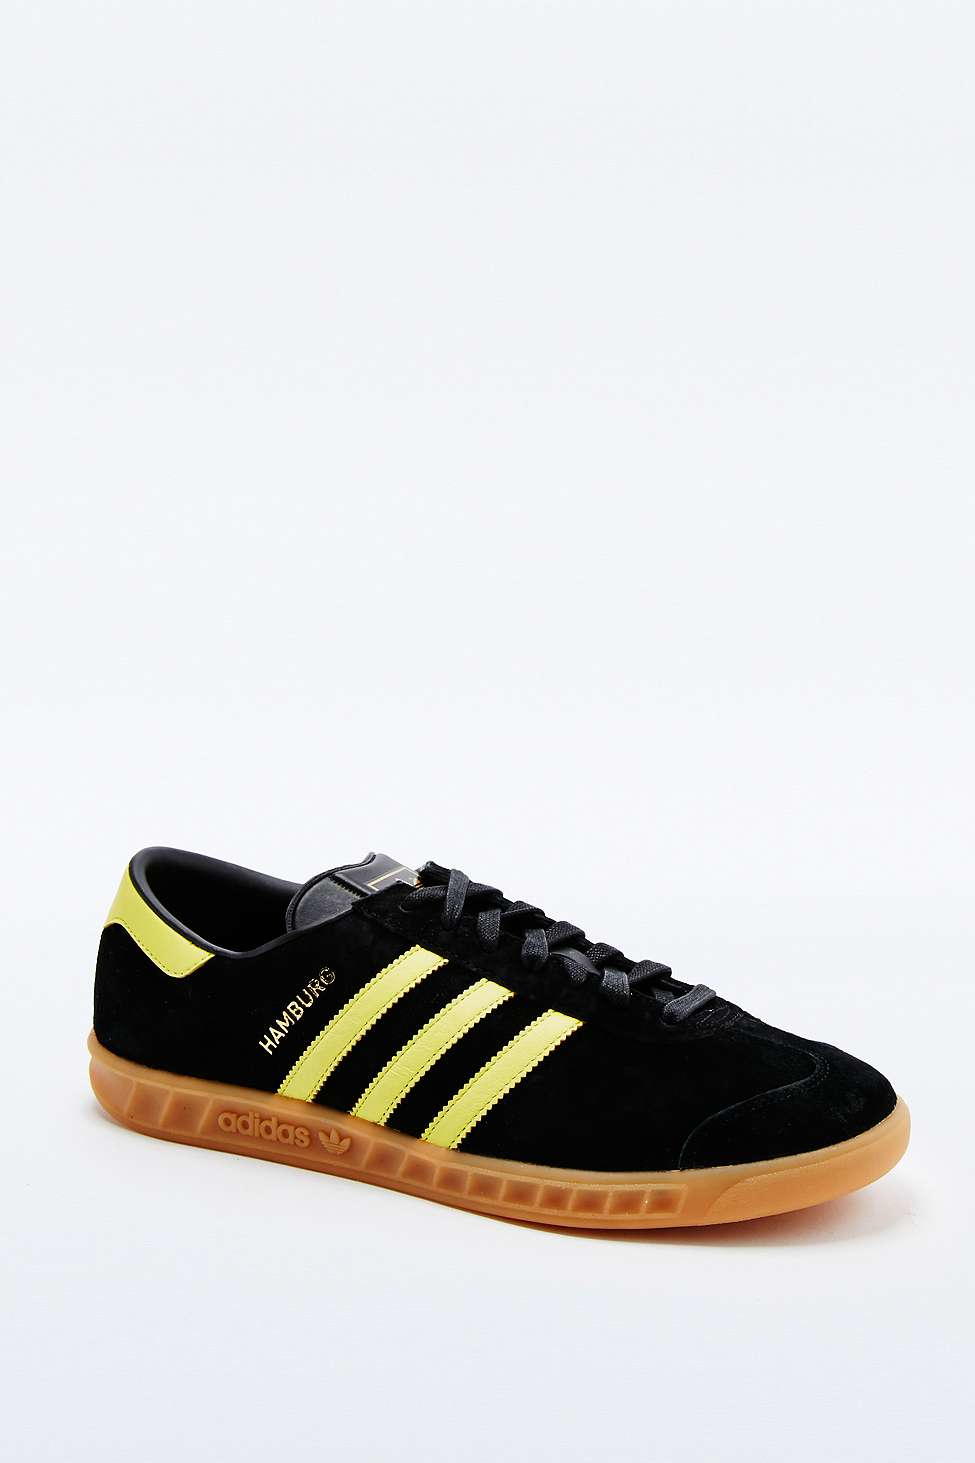 huge discount 7888c 4f967 adidas Originals Hamburg Black And Yellow Trainers in Black